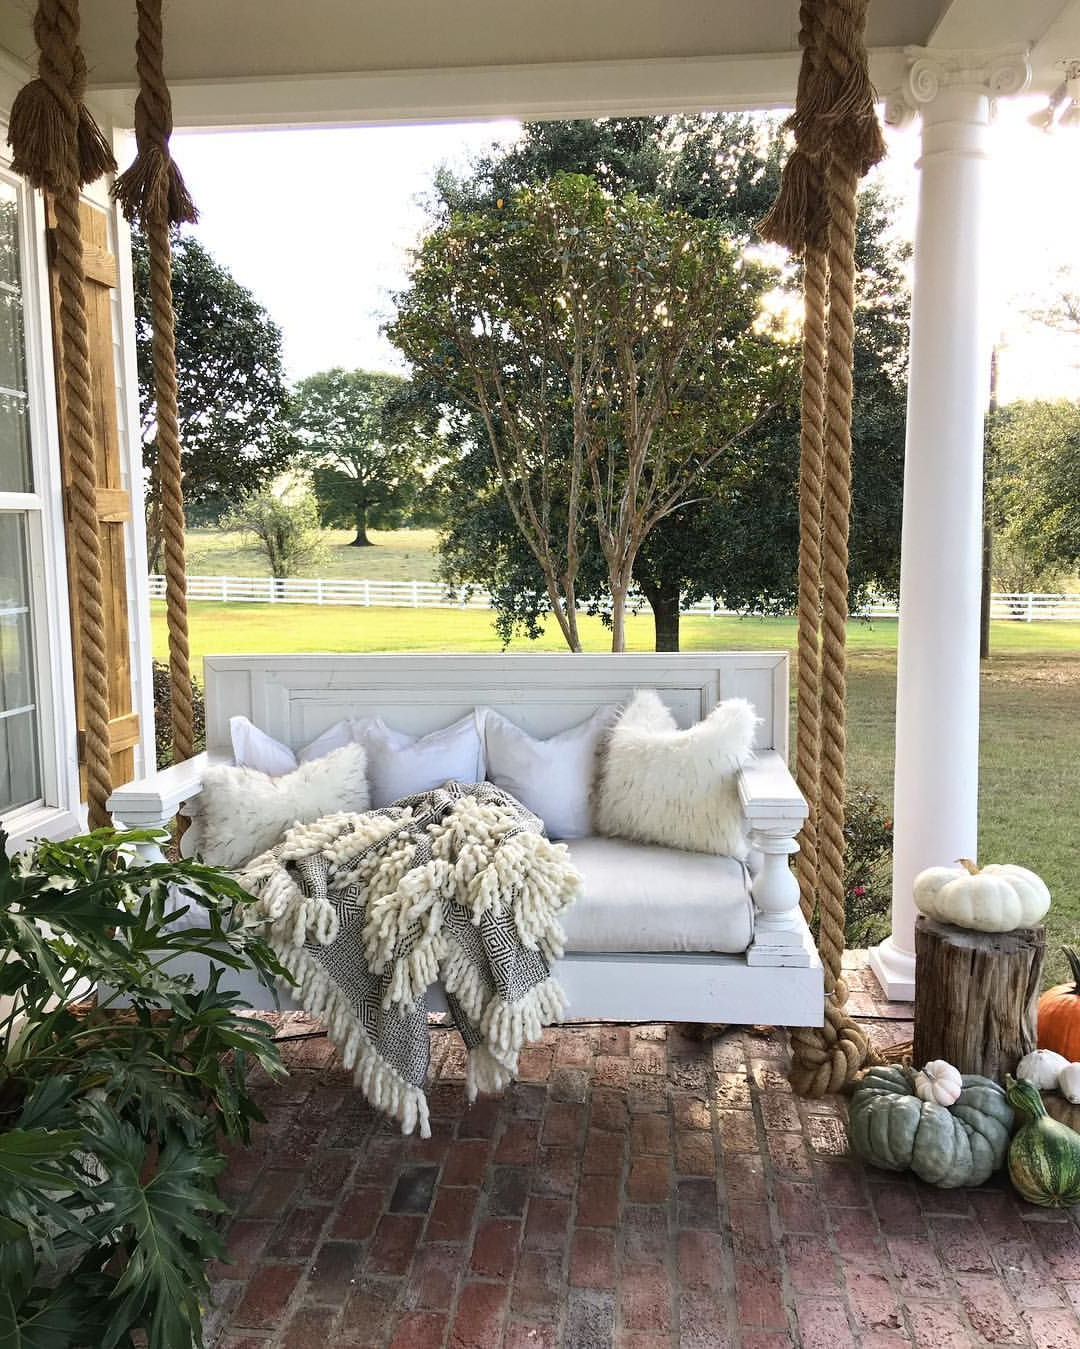 2019 47 Rustic Farmhouse Porch Decor Ideas Hanging Manor Bed Regarding Country Style Hanging Daybed Swings (View 4 of 30)